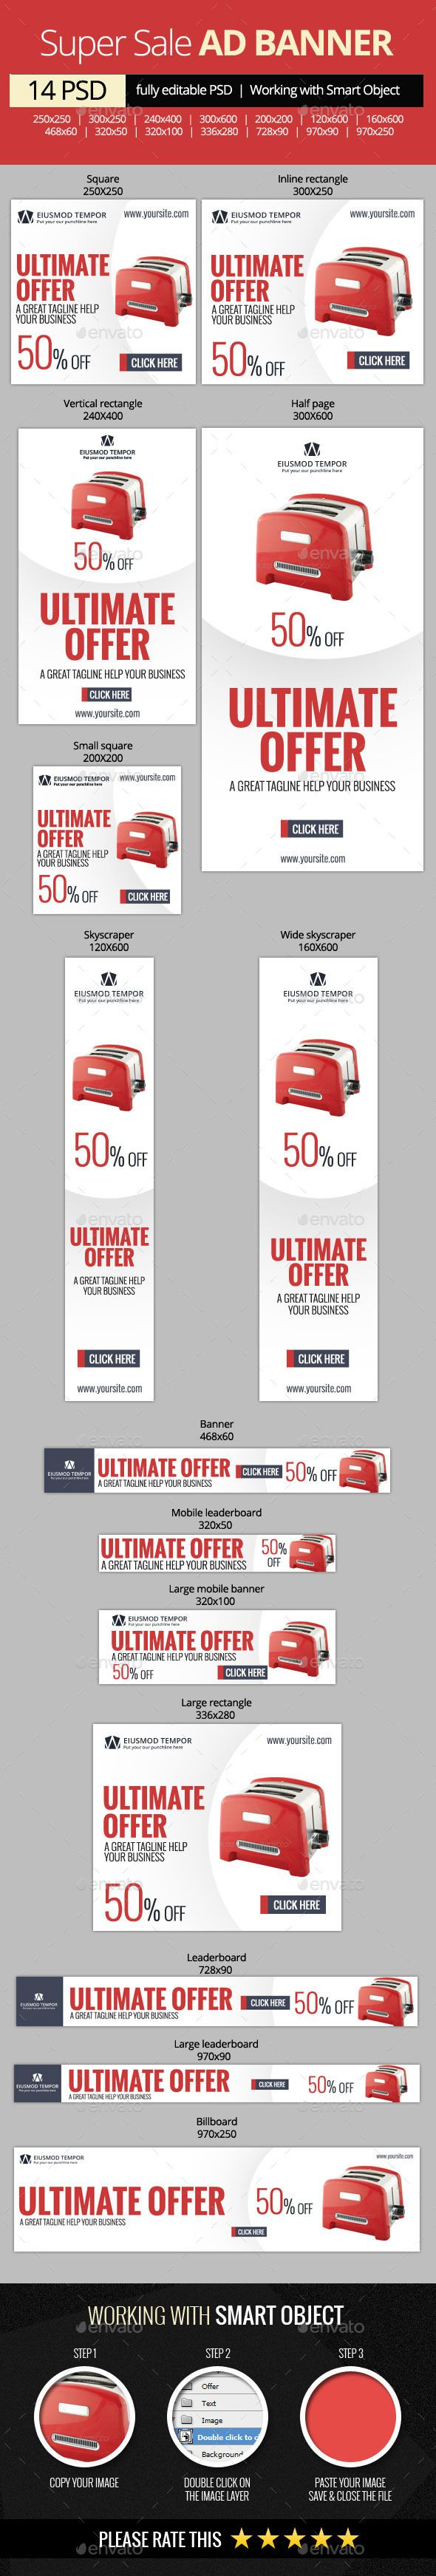 Super sale web banners Download: http://graphicriver.net/item/super-sale-web-banners/11022962?ref=ksioks